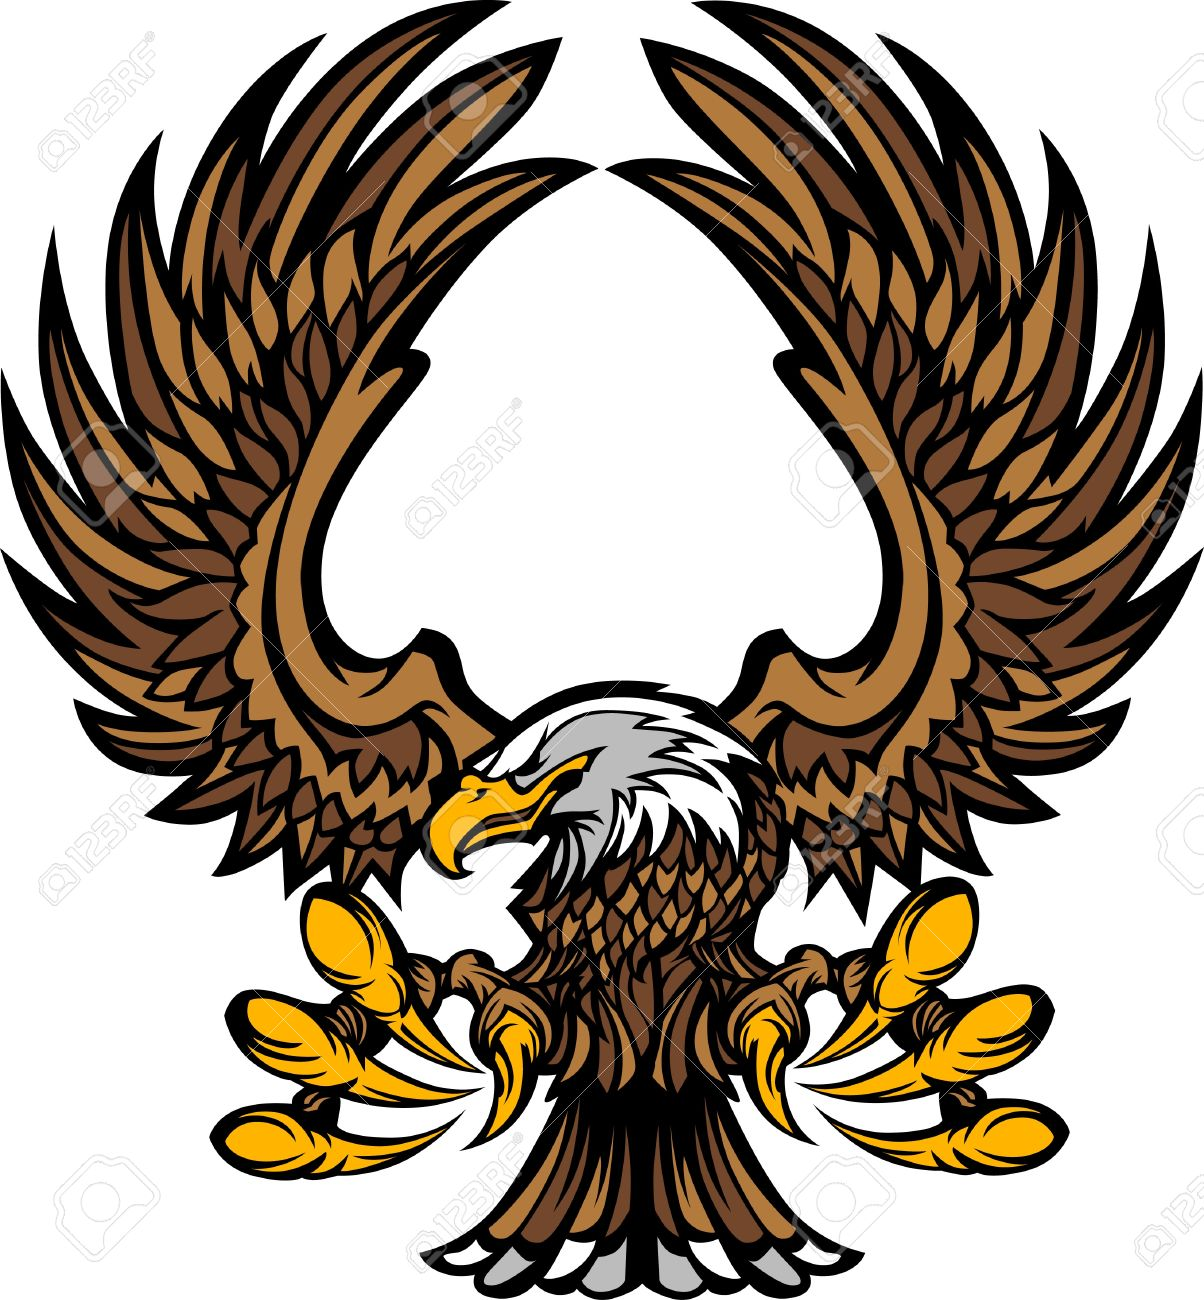 eagle wings and claws mascot logo royalty free cliparts vectors rh 123rf com eagle vector art eagle vector image